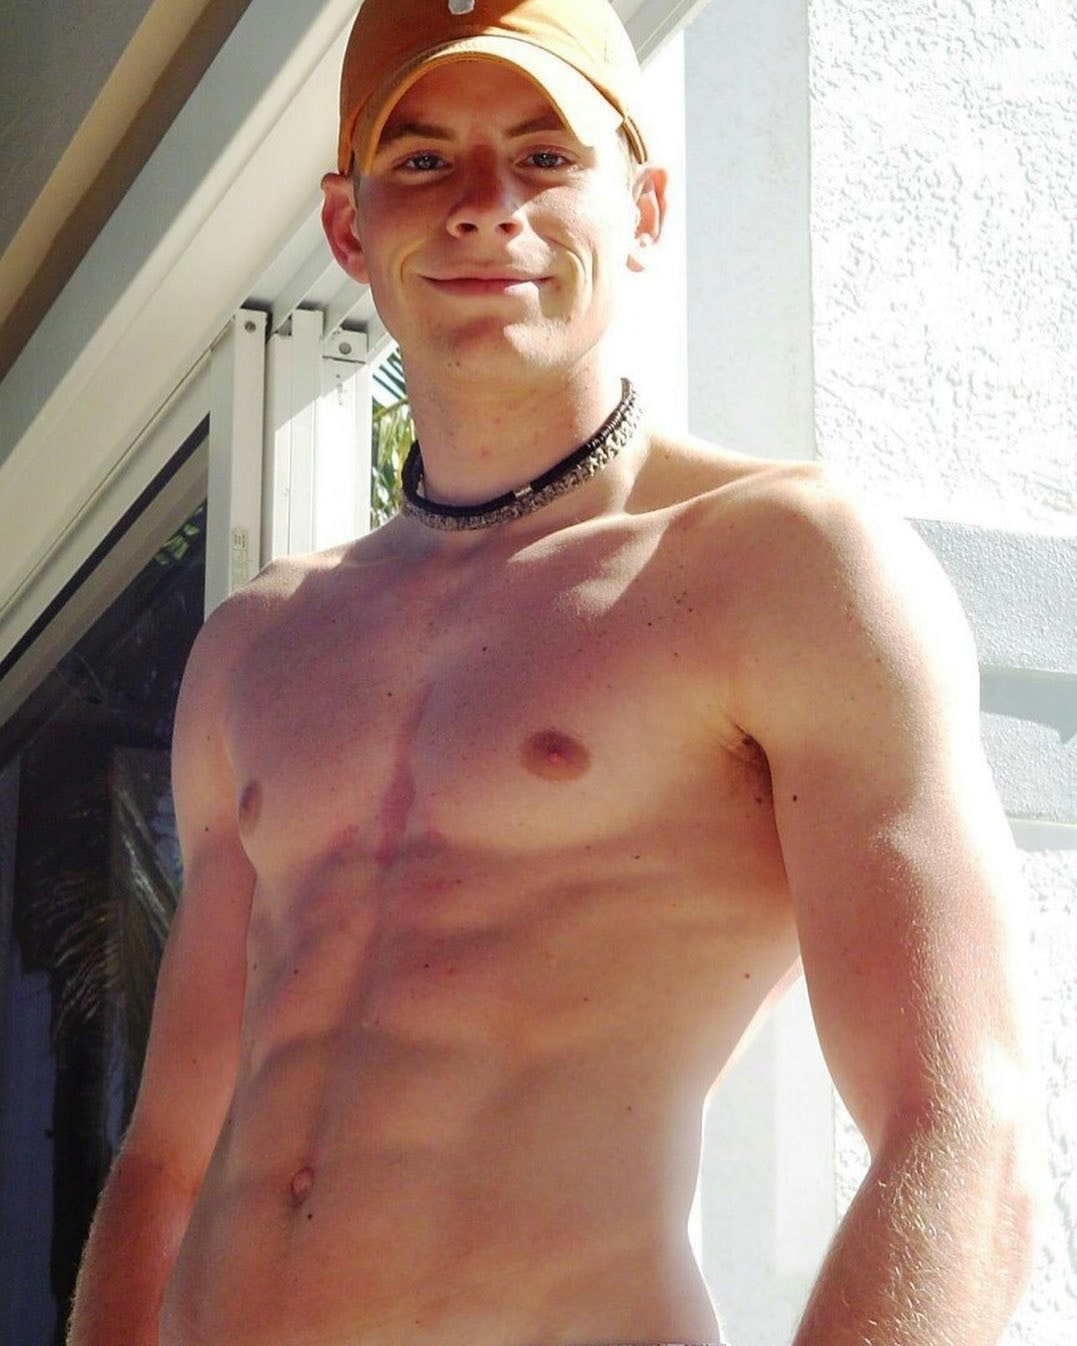 #men #smile #twinks #muscle #abs #hotboys